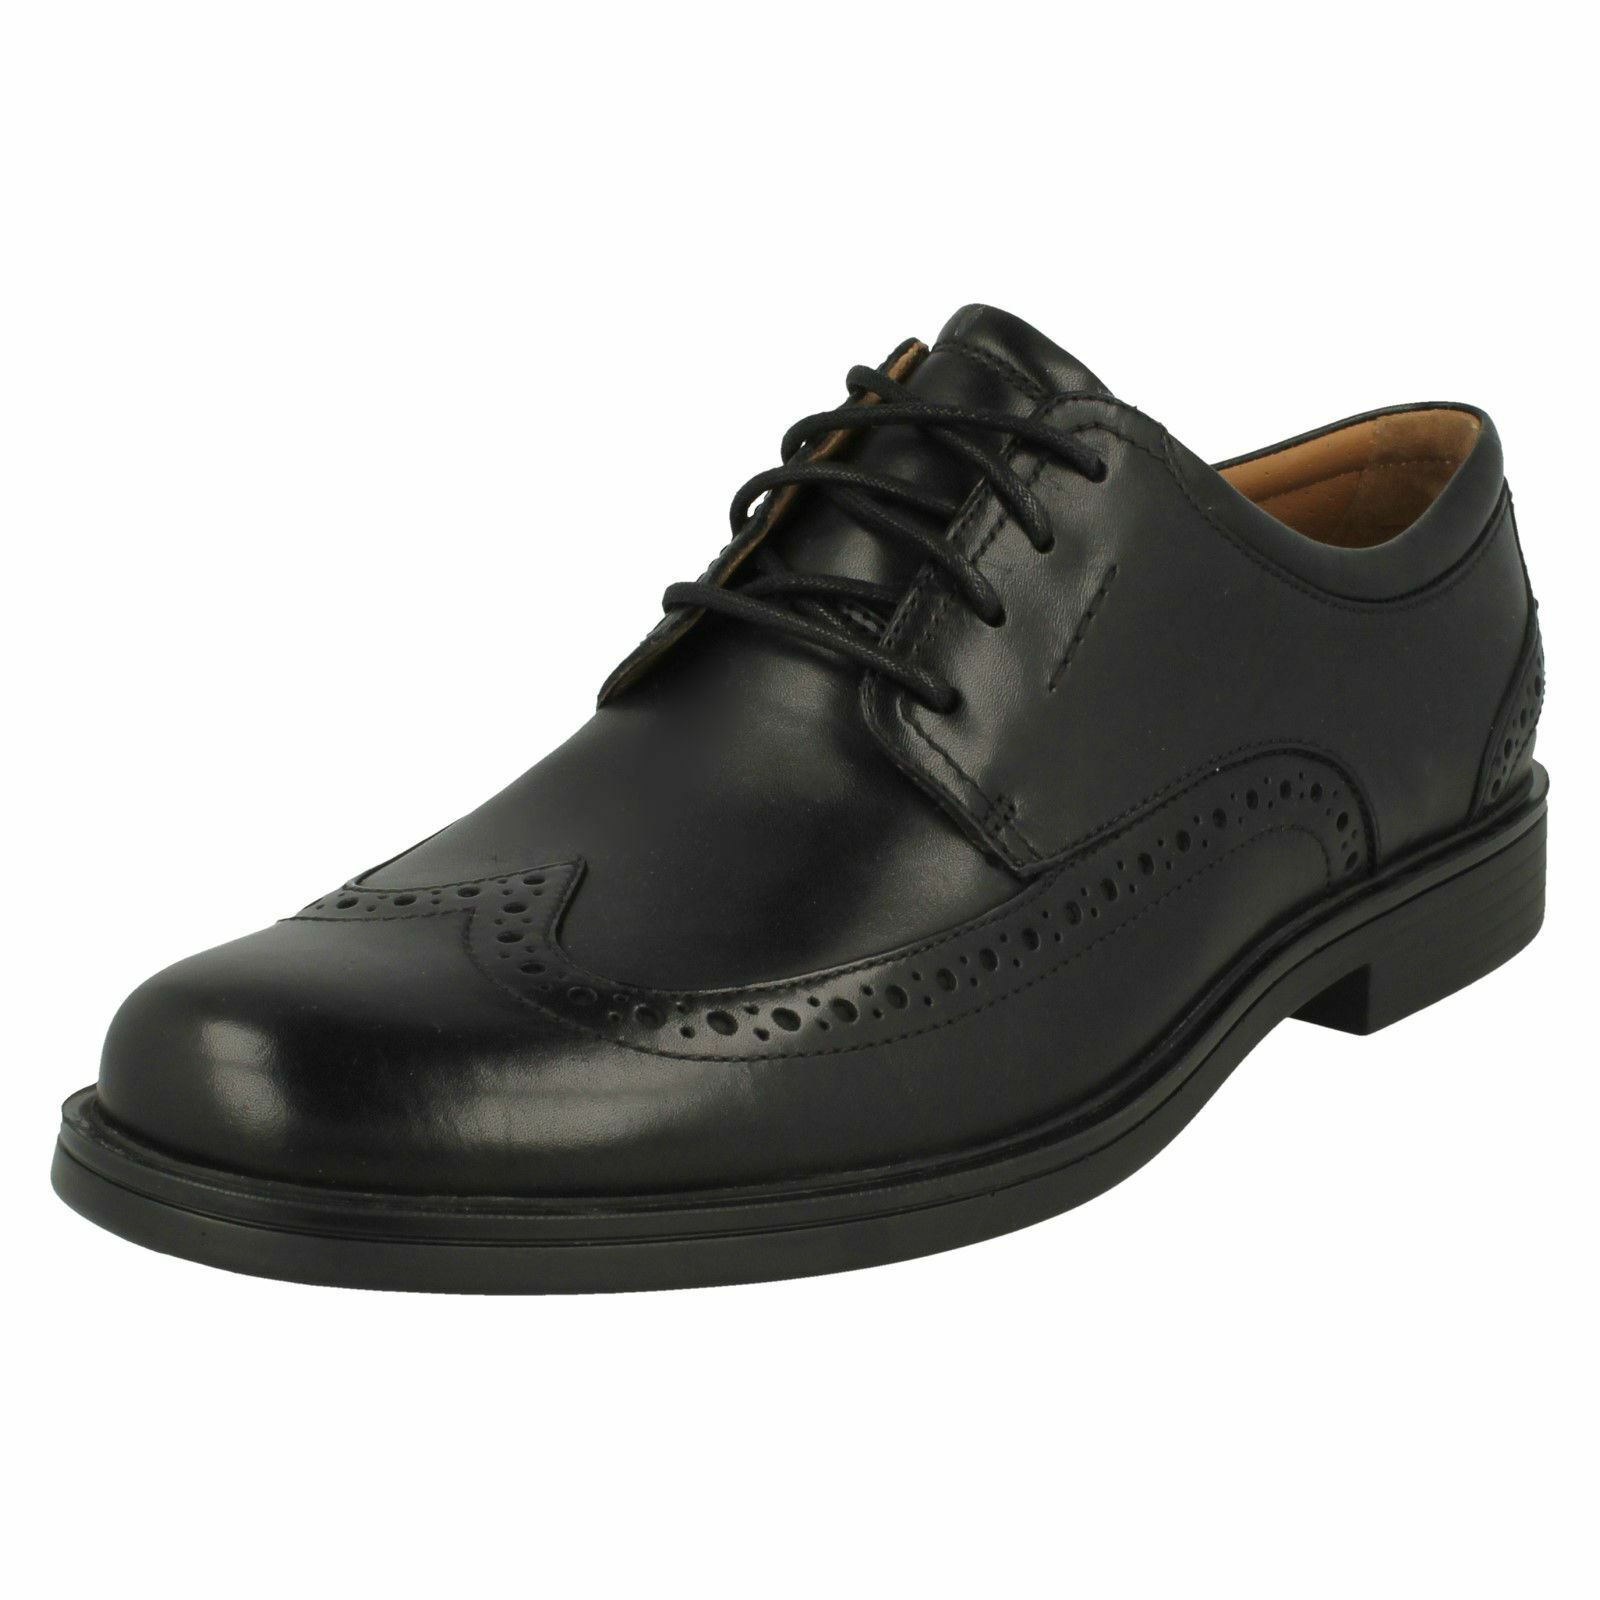 hommess Clarks Formal Wing Tip chaussures 'Un Aldric Wing'